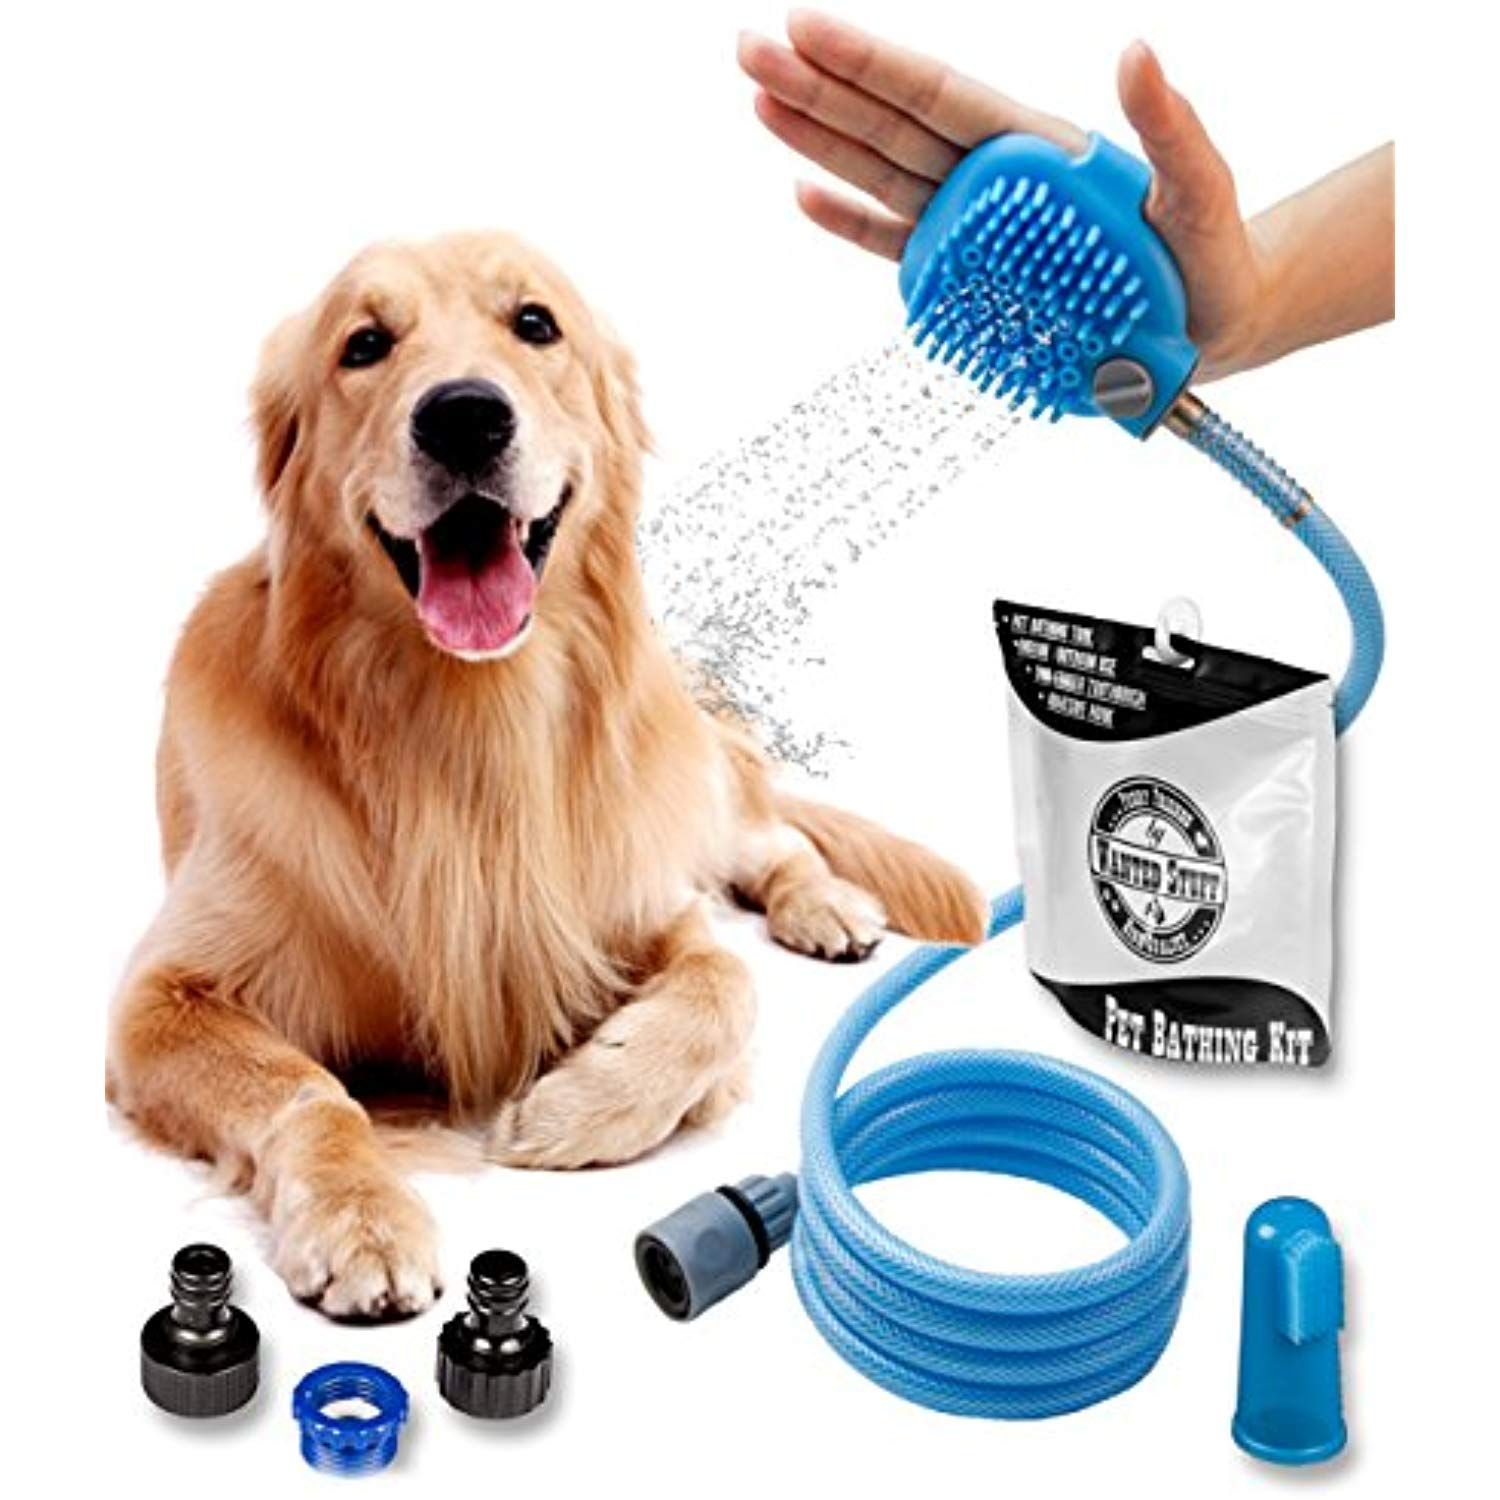 Wantedstuff 3 In 1 Pet Shower Kit With Free Dental Finger Brush